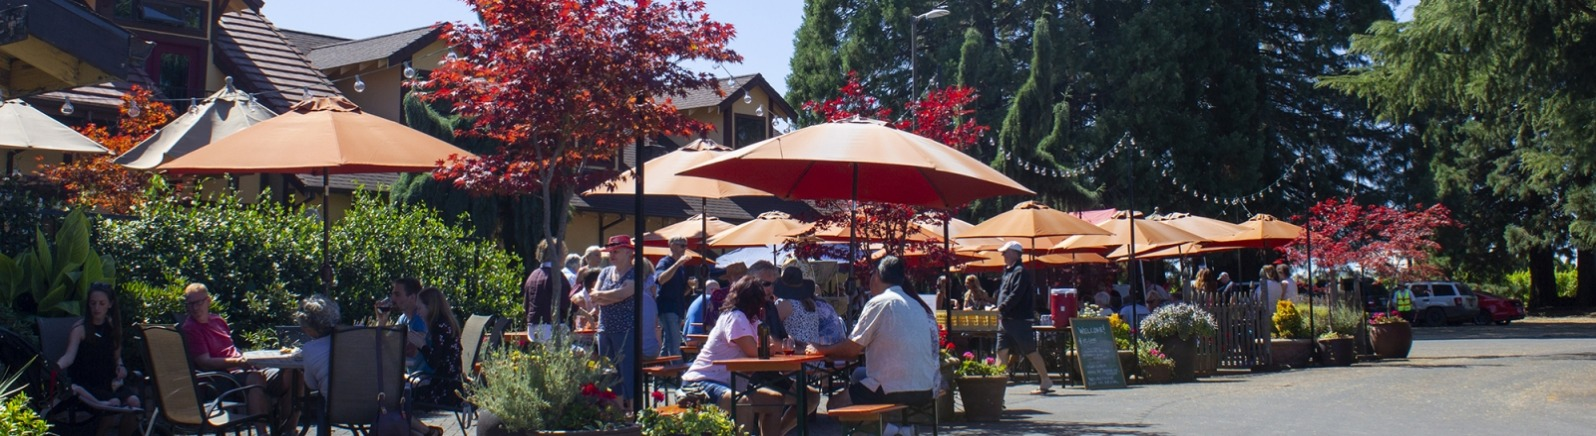 Summer event at St. Josef's Winery